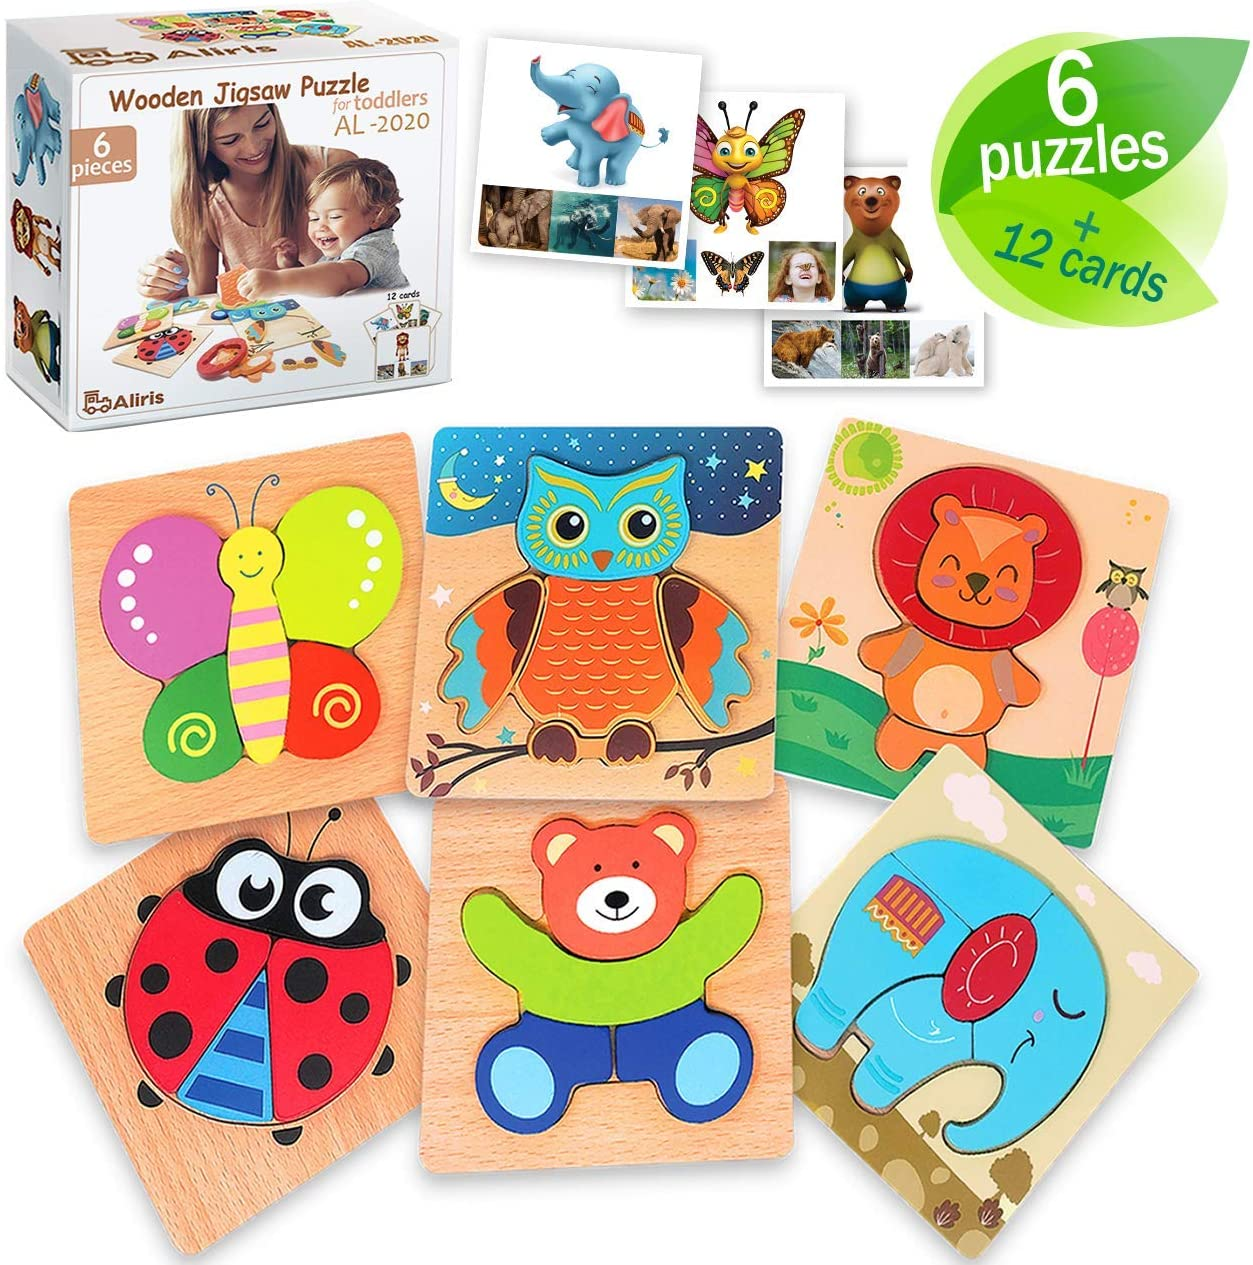 Aliris 6 Wooden Jigsaw Puzzles for Toddlers with Cards and Storage Bag Gift